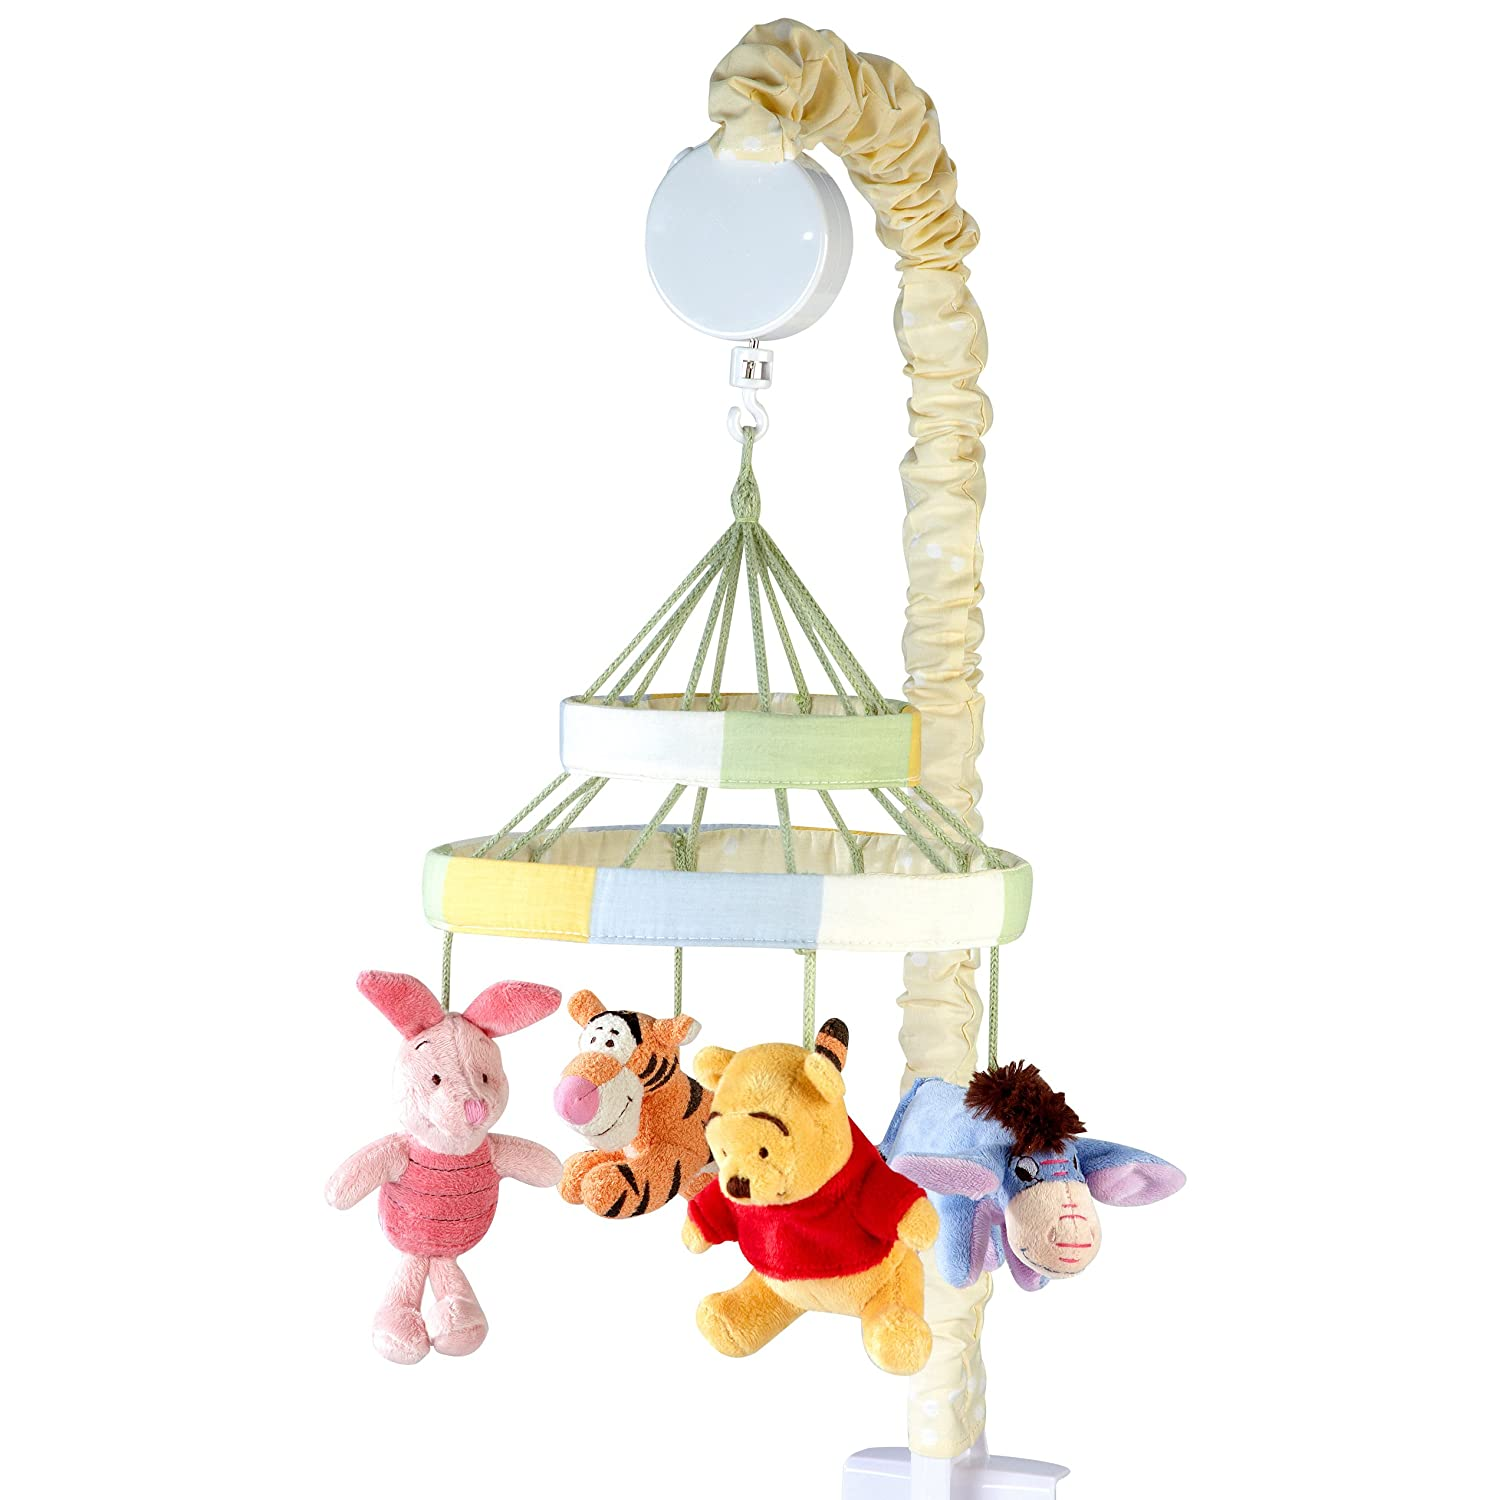 Disney Winnie the Peeking Pooh Nursery Crib Musical Mobile, Yellow, Orange, Blue Crown Crafts Inc 6095079